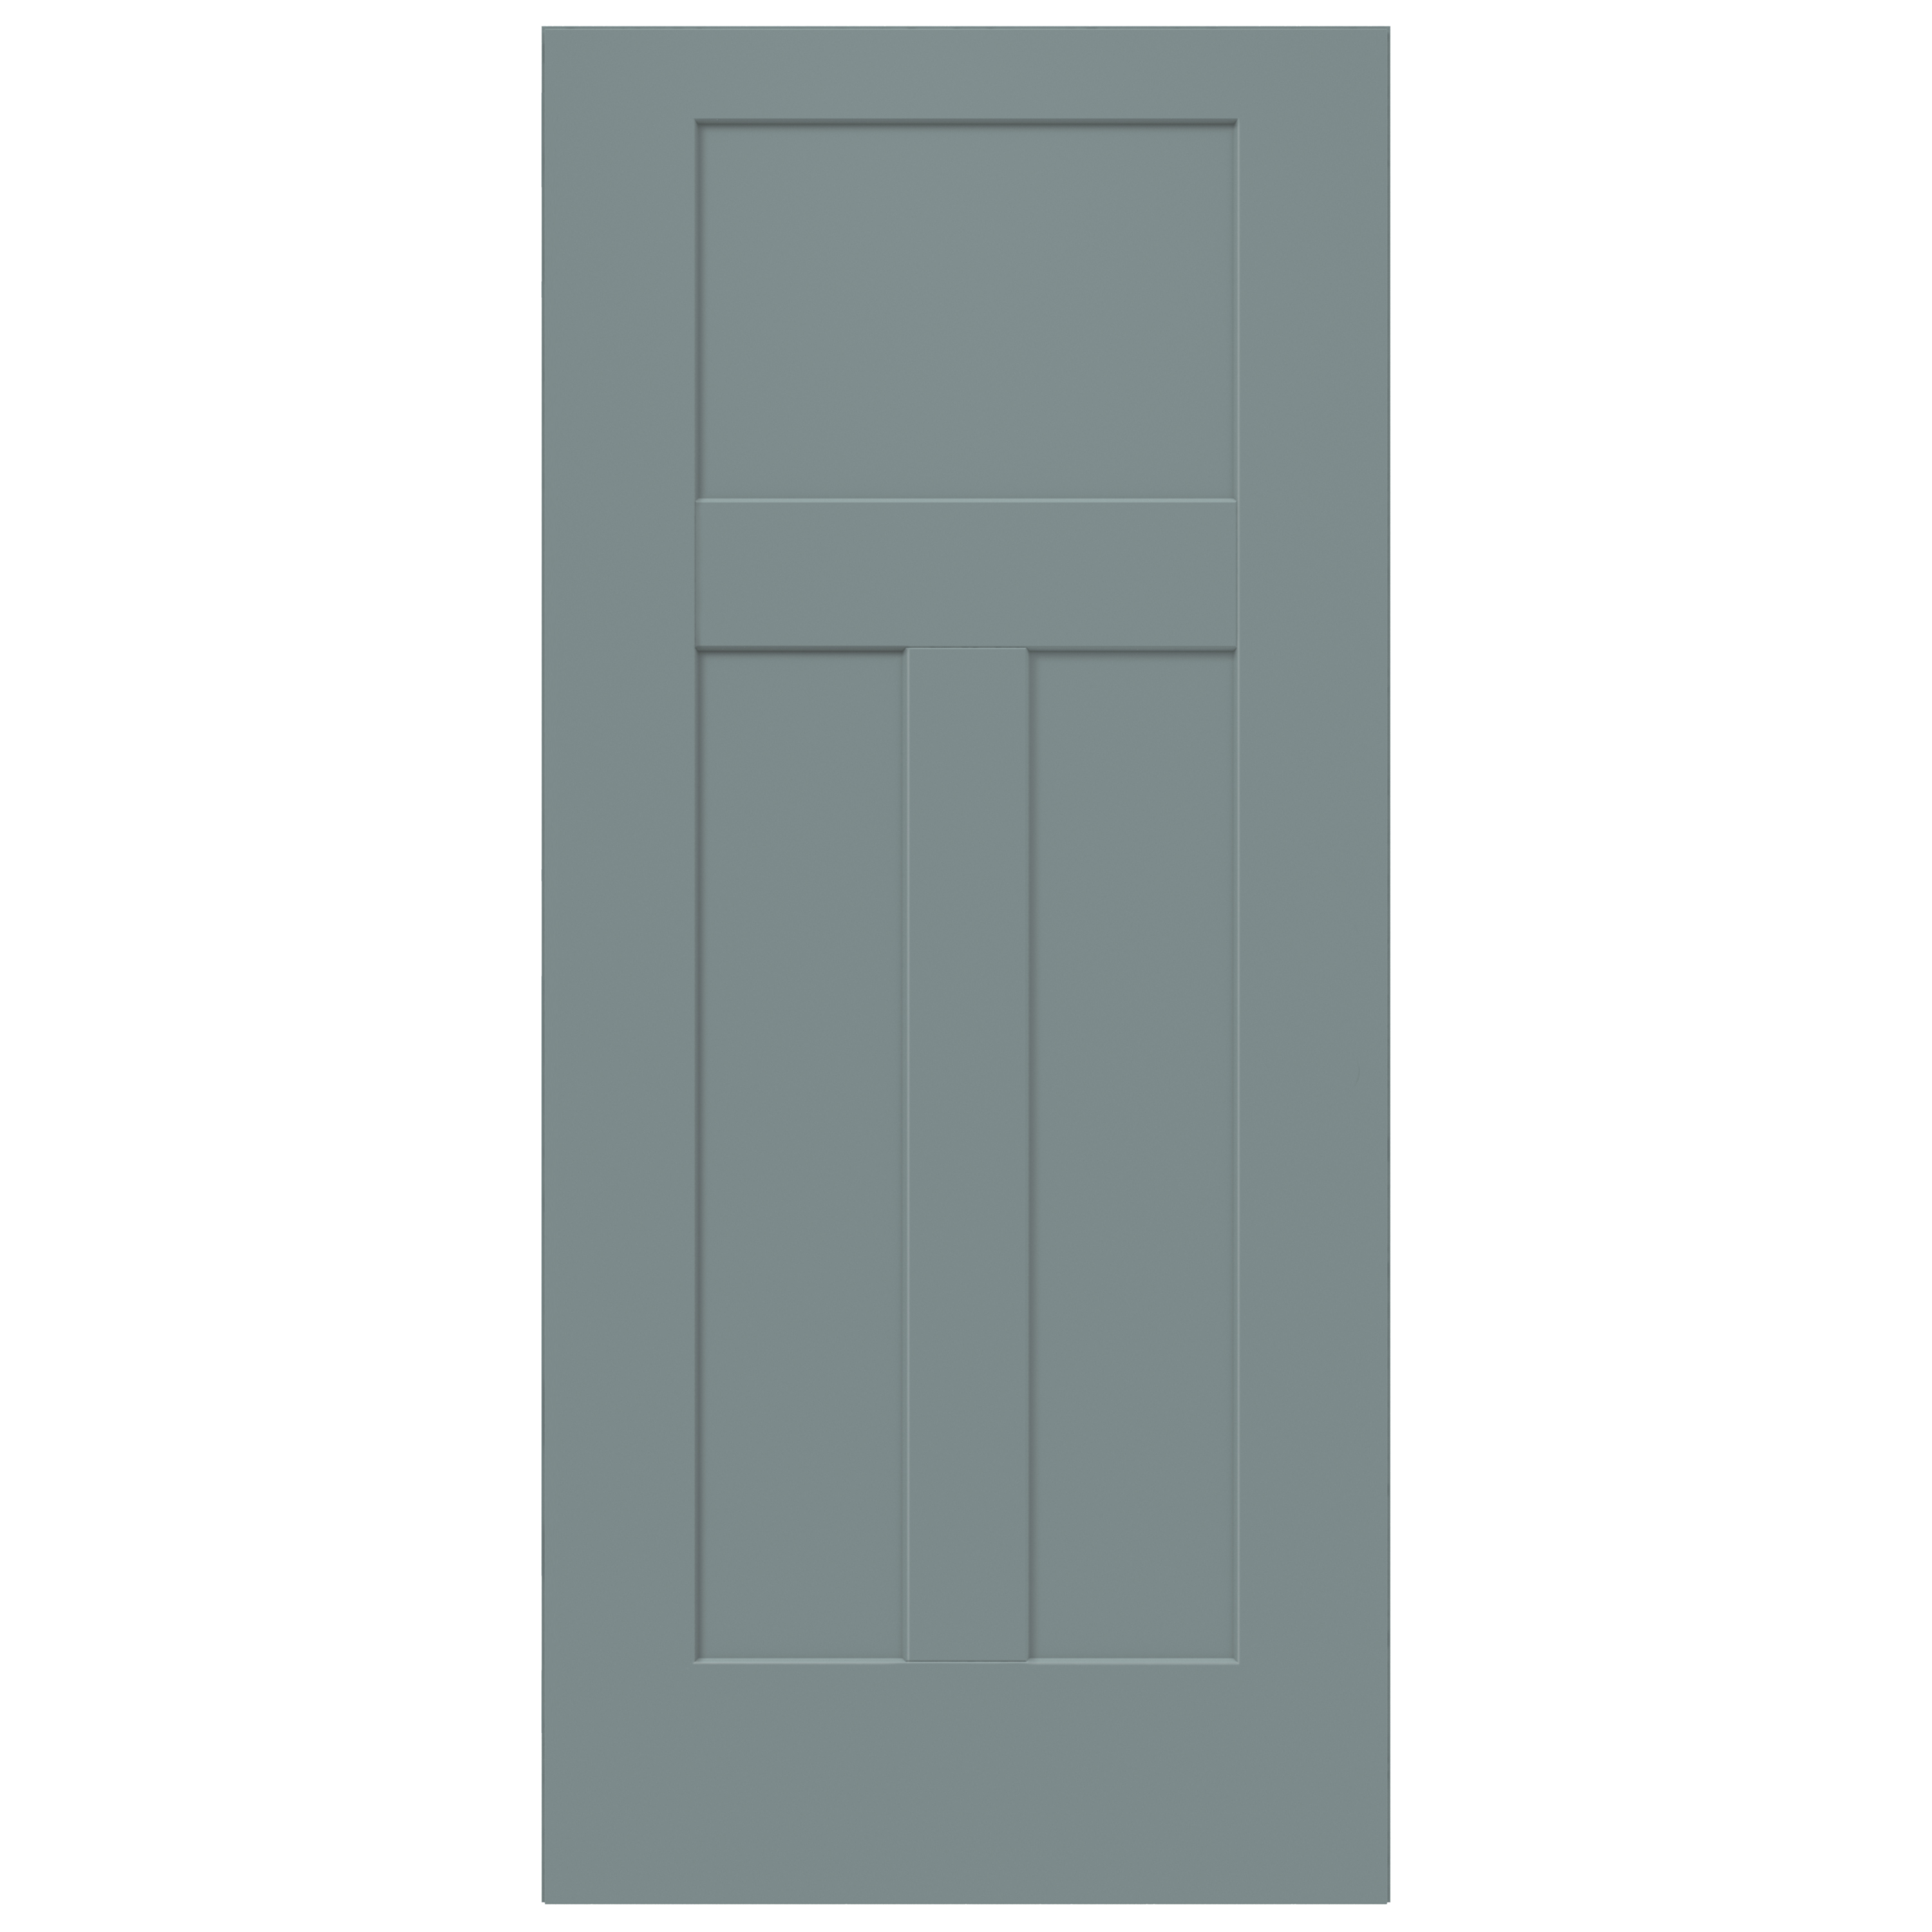 style meets substance in new jeld wen steel door collection business wire